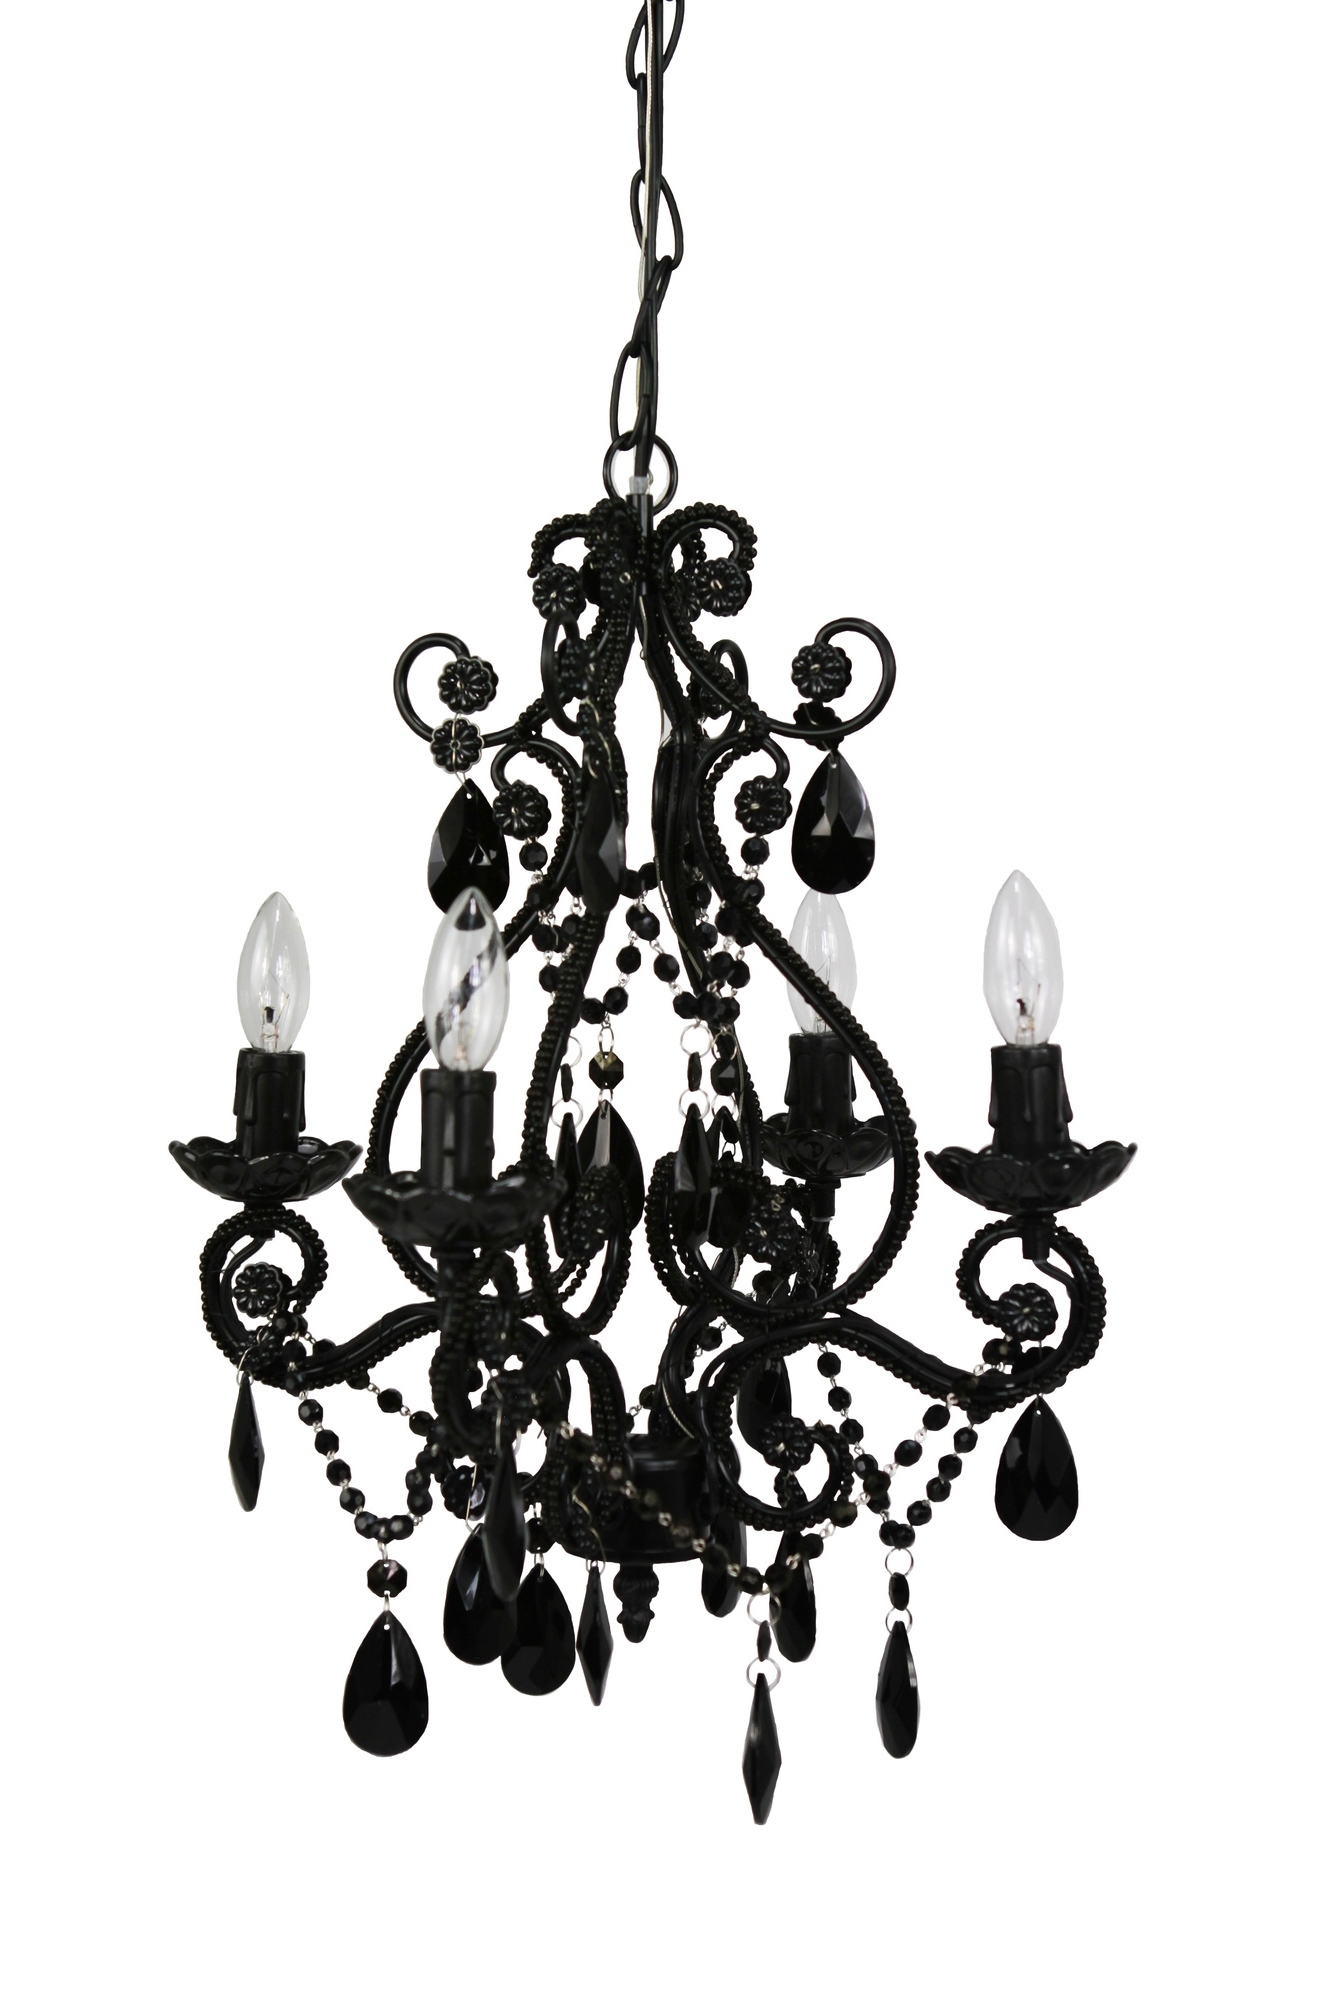 Cheap Chandelier, Chandeliers And Modern (View 3 of 20)